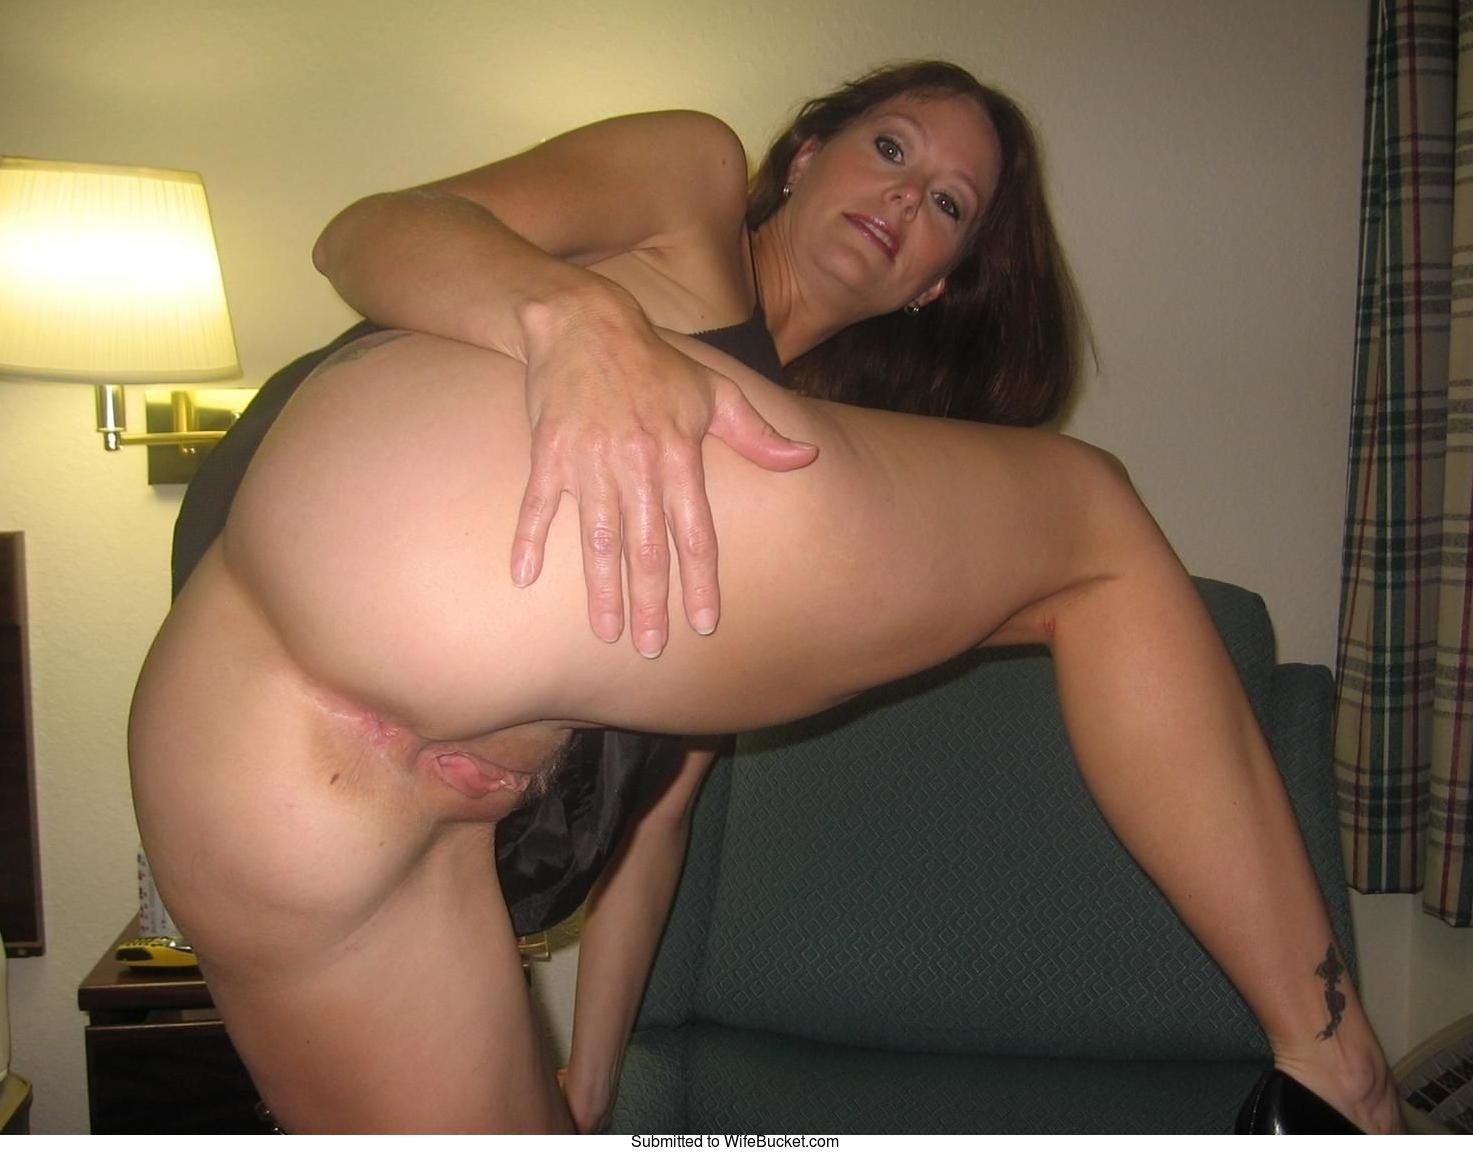 Free amateur milf videos thirties